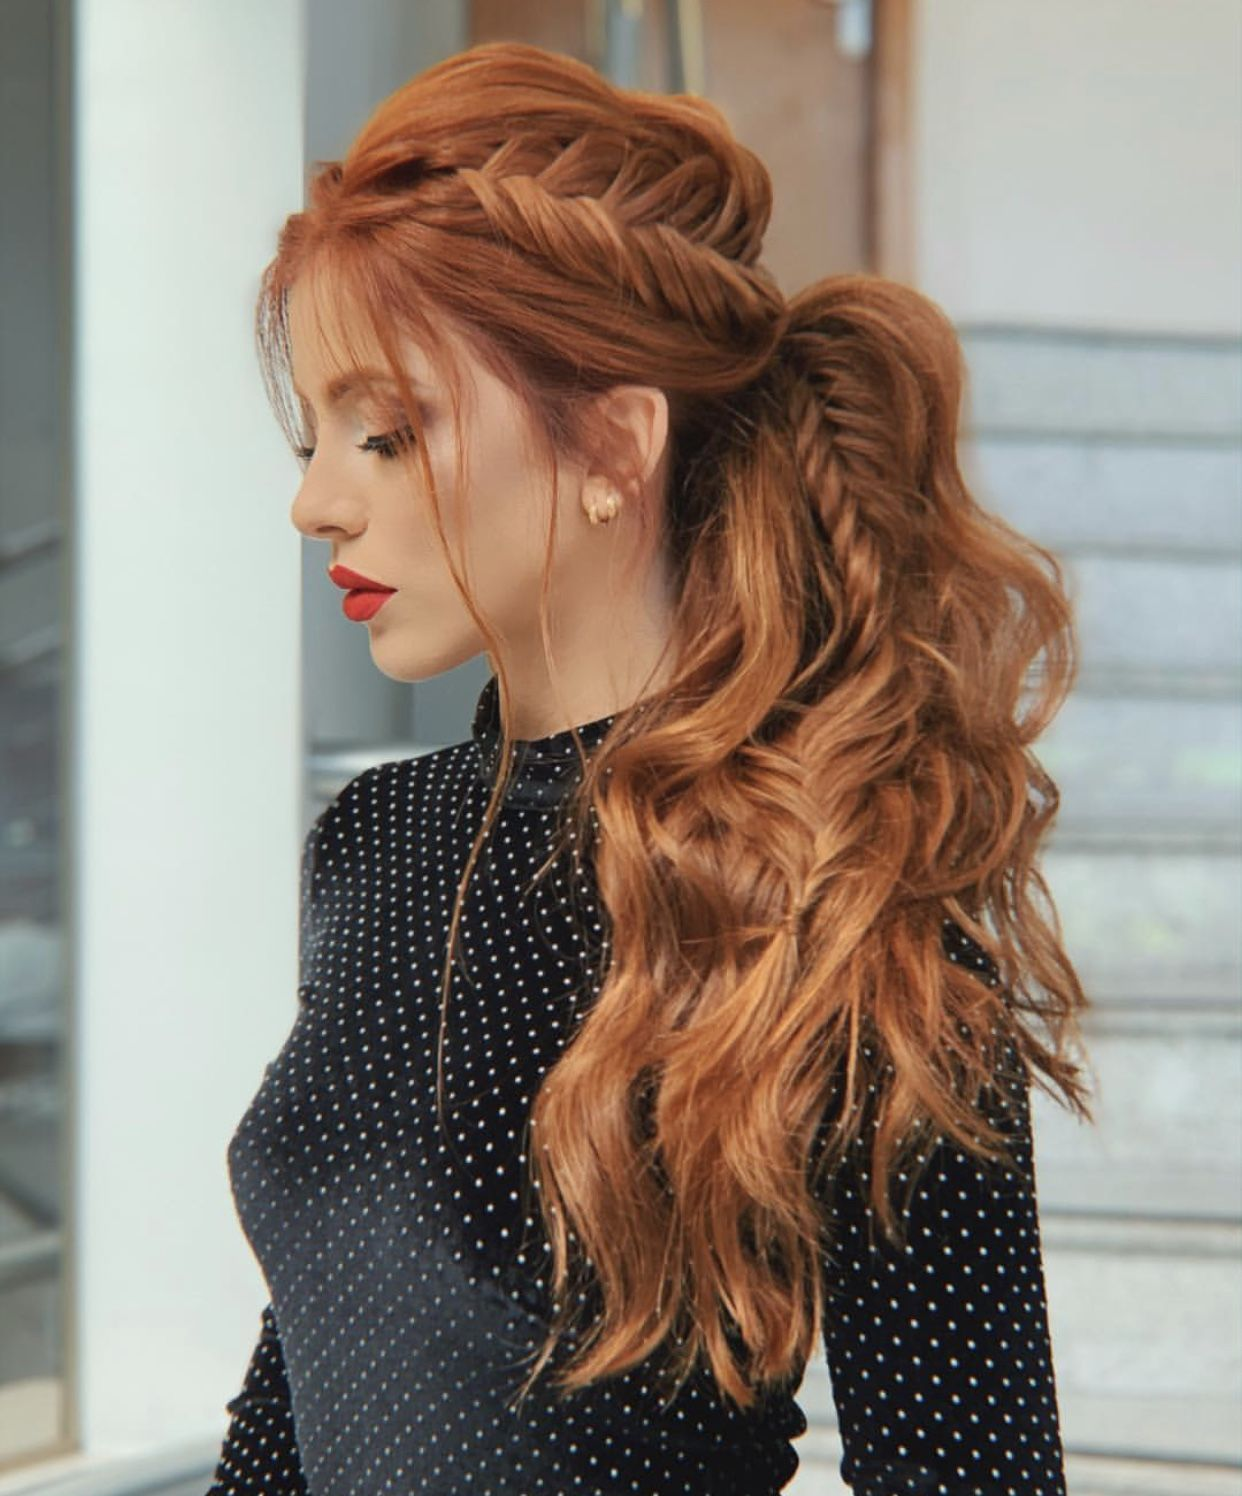 Loose hair hairstyle with braid